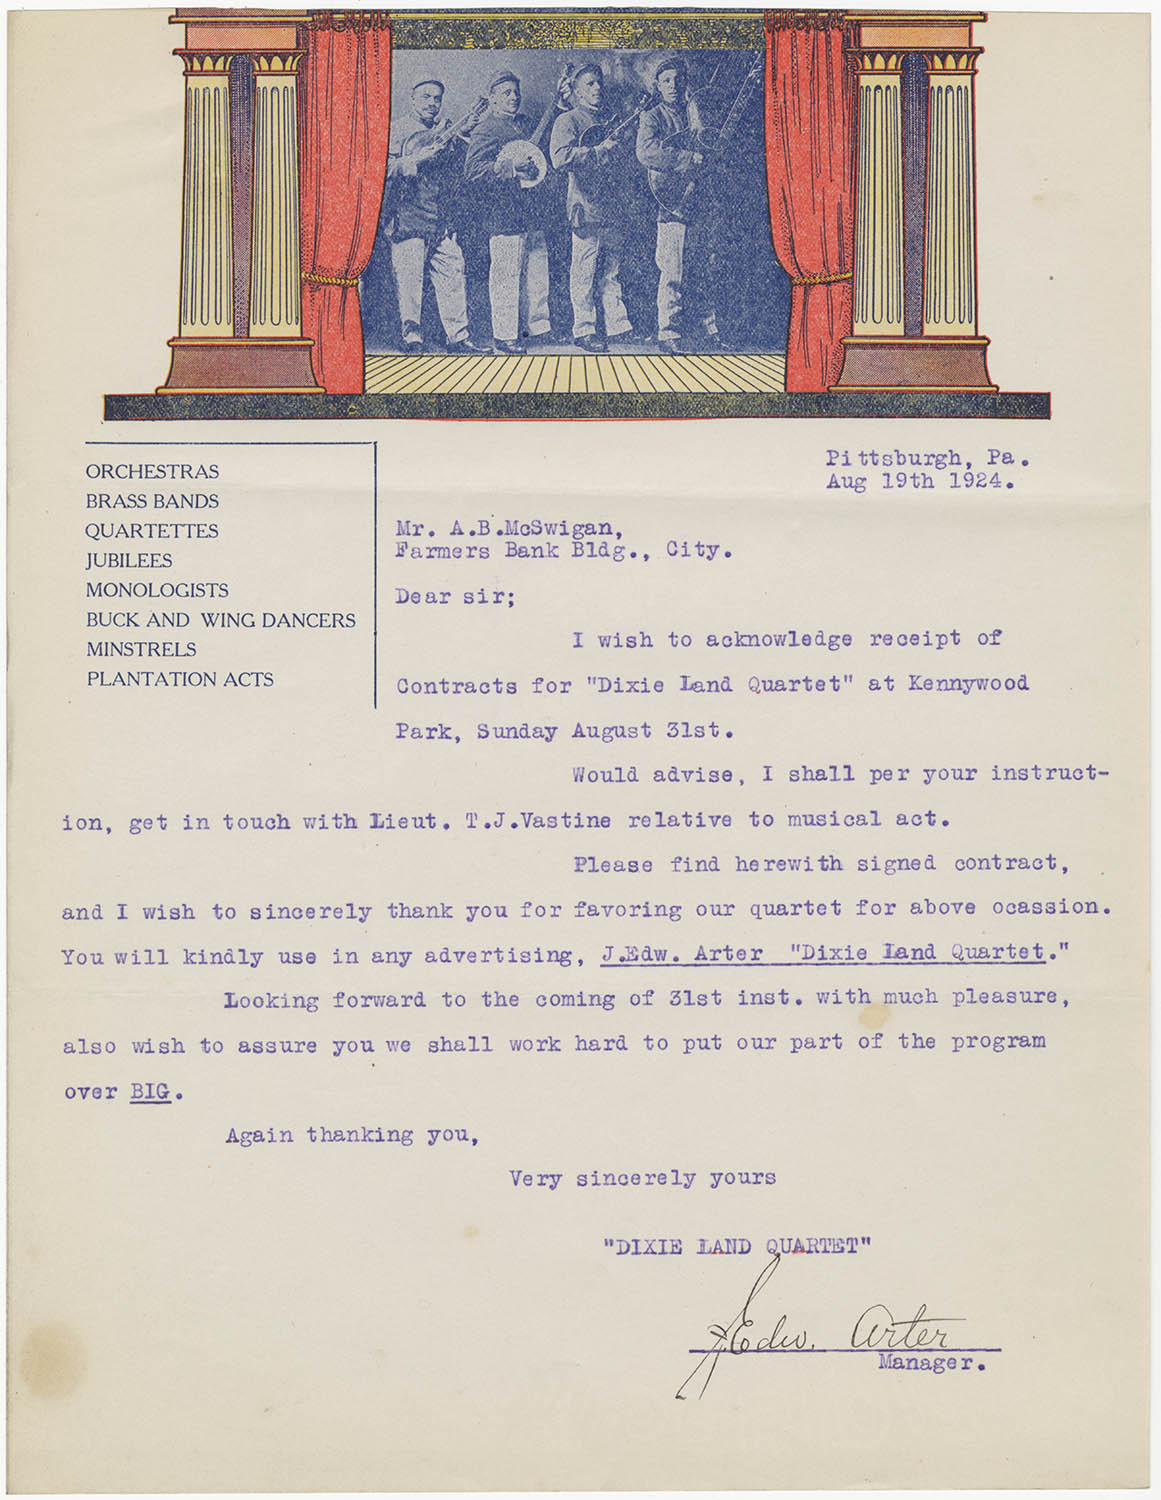 Letter from Penn Diamond Orchestra to Andrew McSwigan, Aug. 29, 1924.